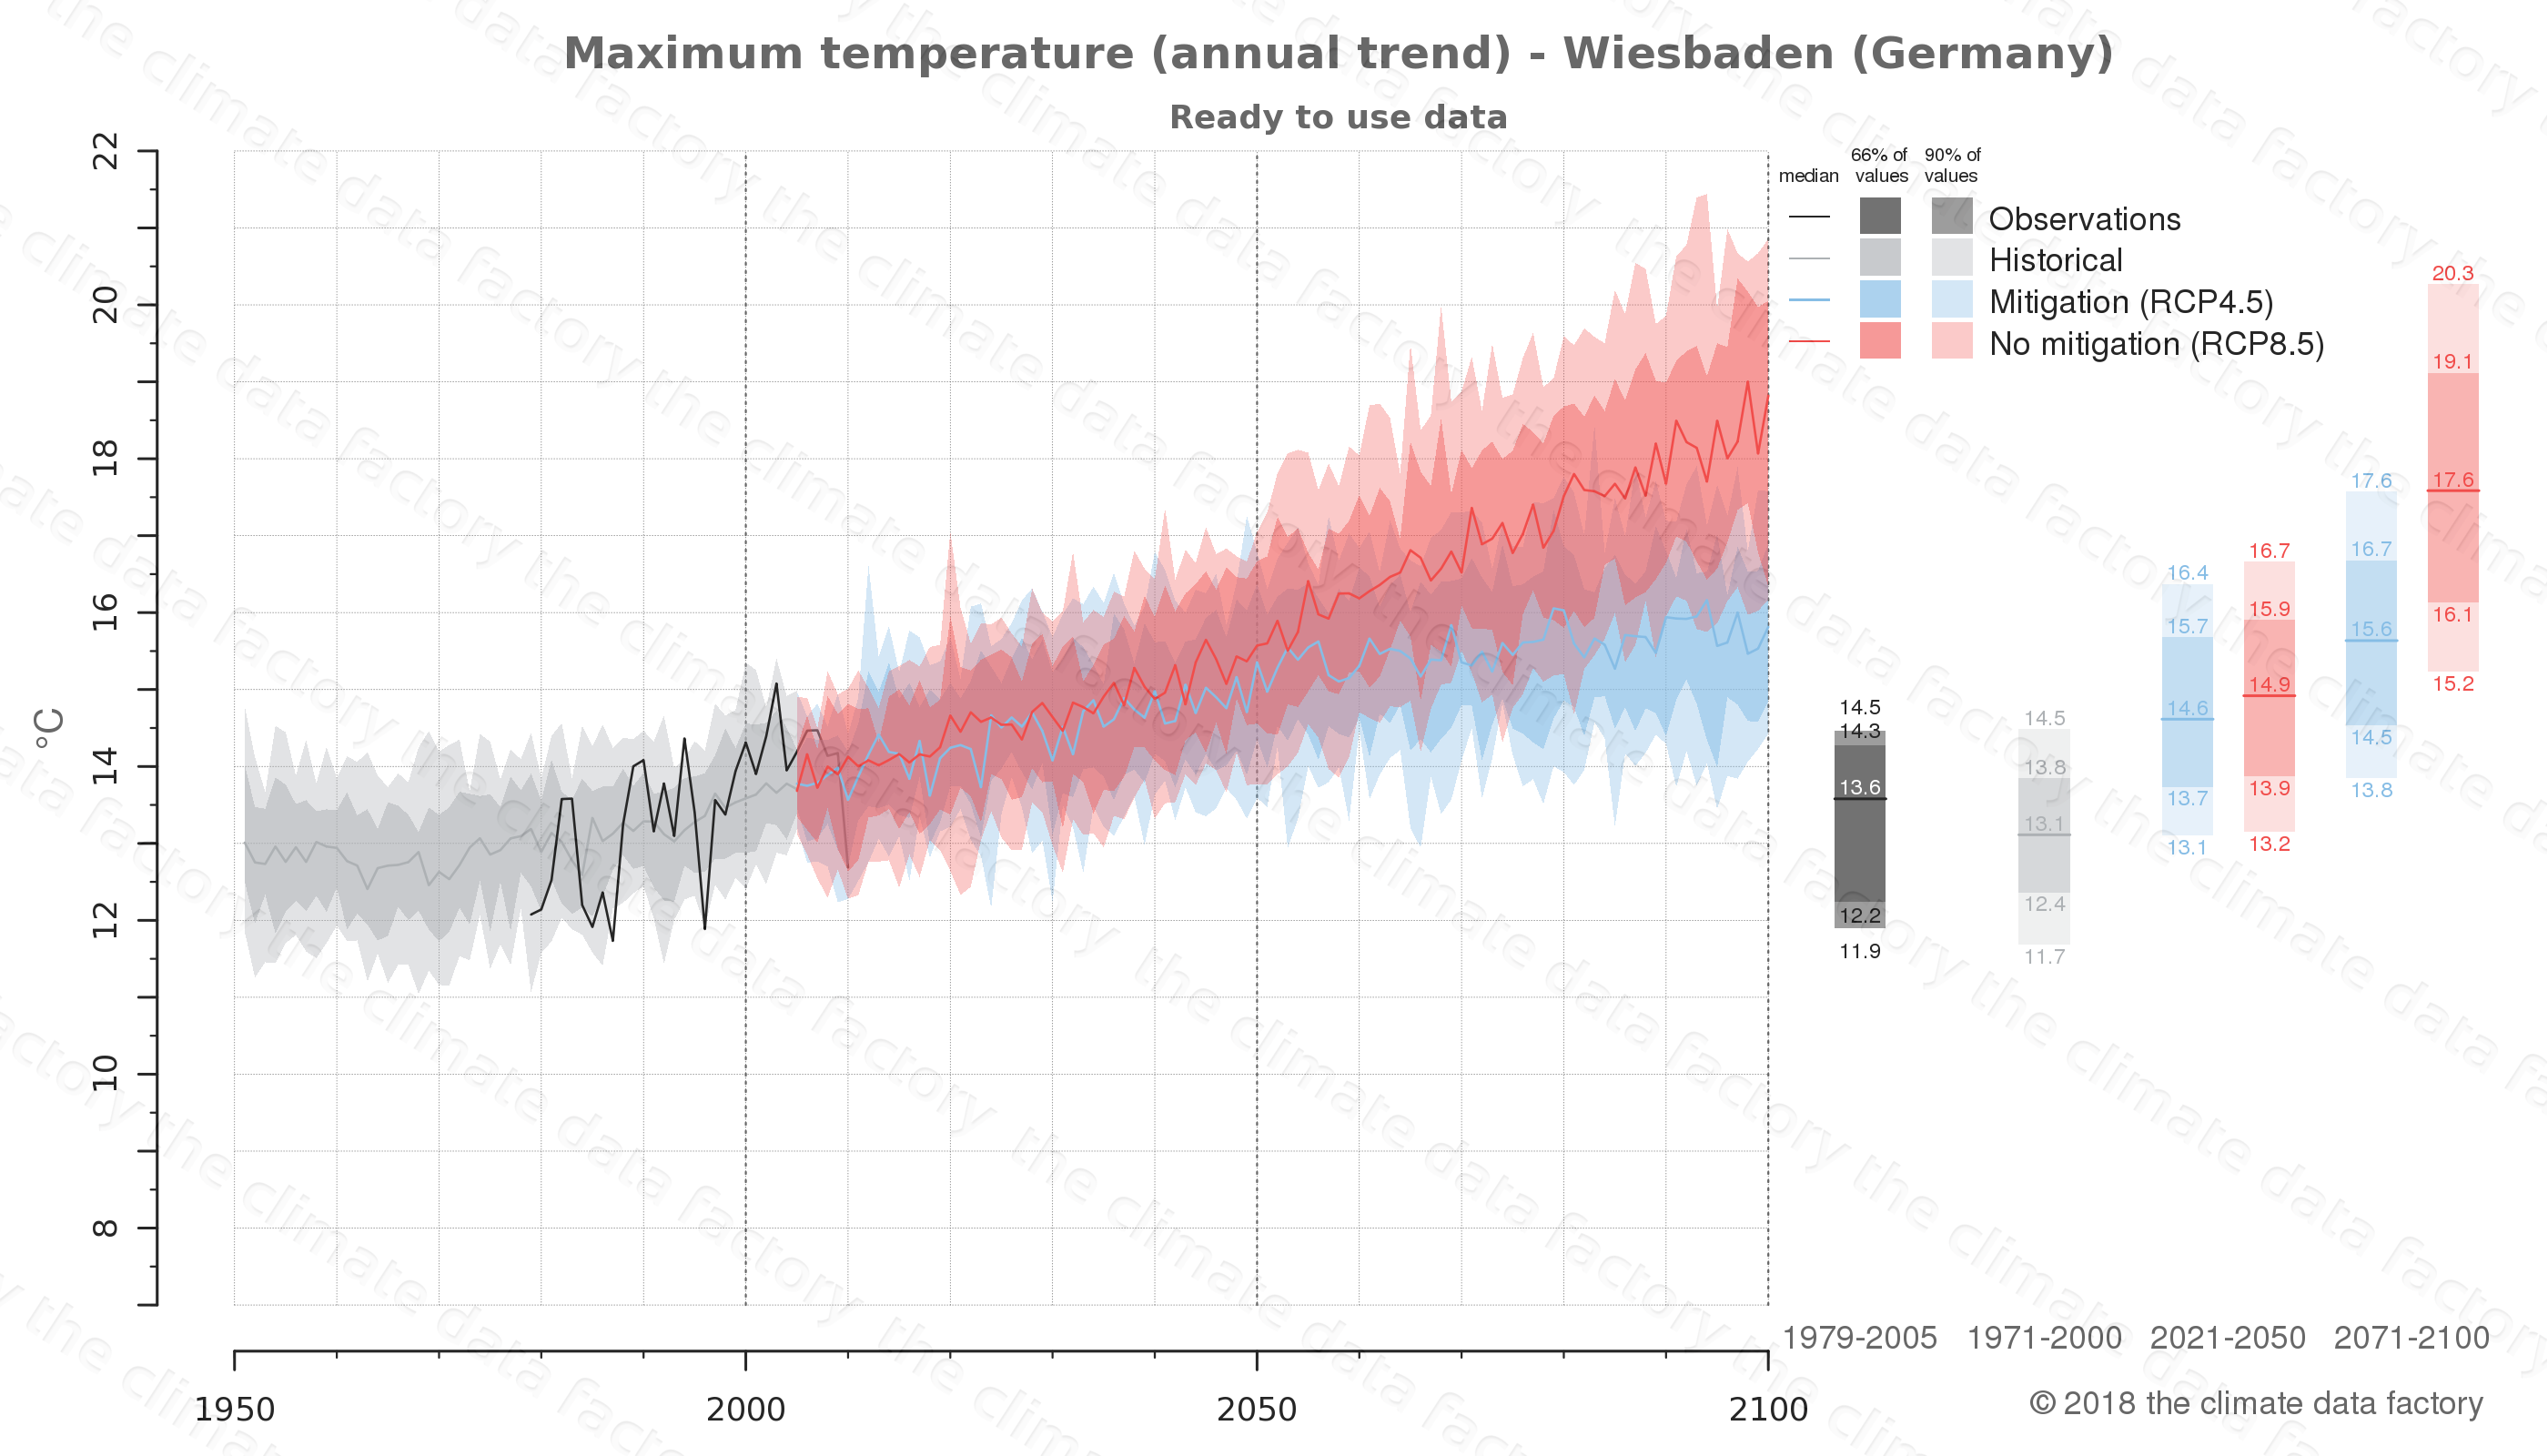 climate change data policy adaptation climate graph city data maximum-temperature wiesbaden germany